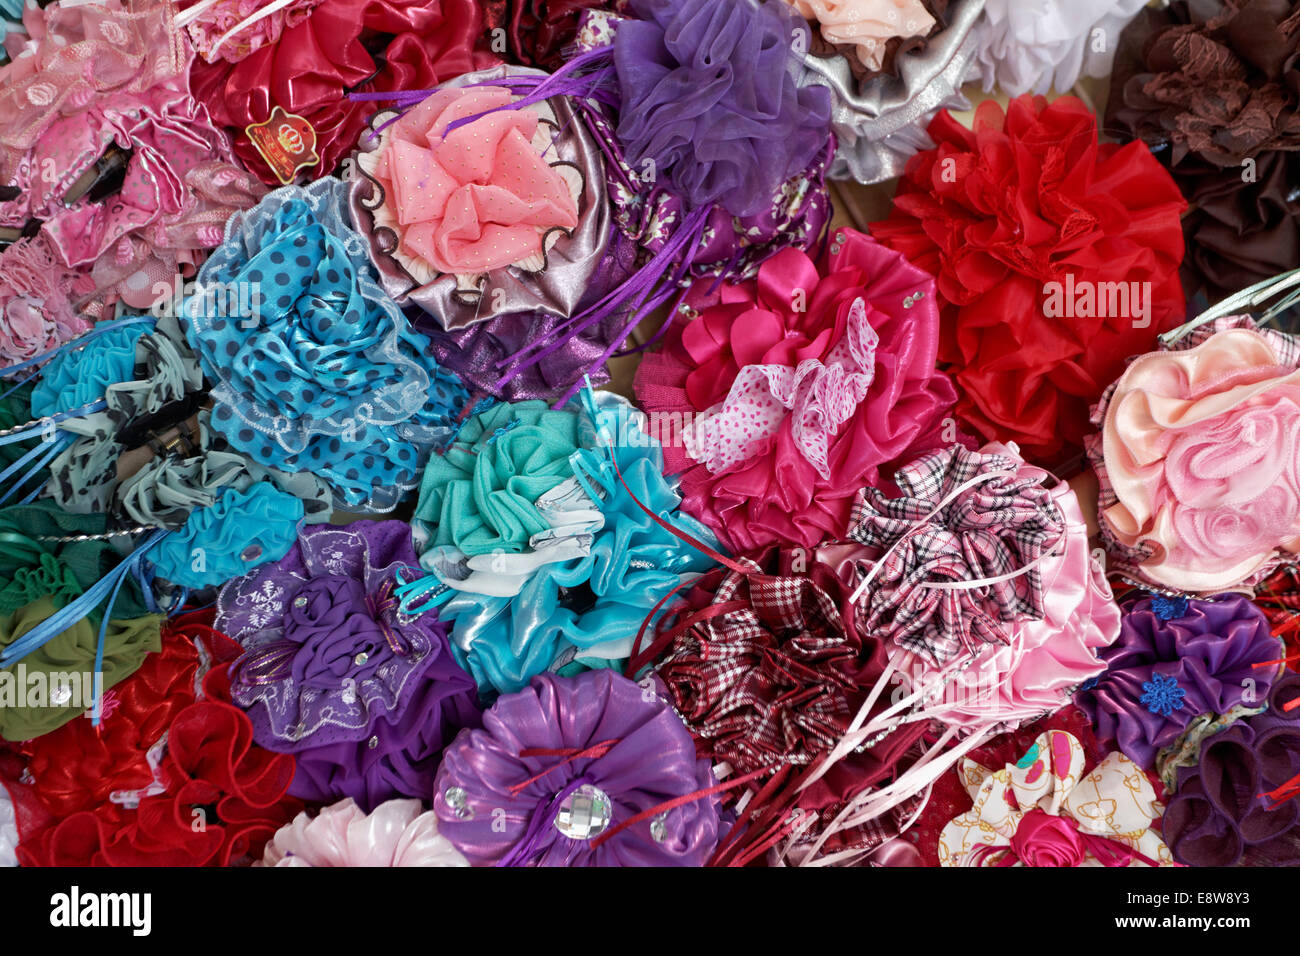 Colourful hair clips in a shop in the Muttrah Souq market, Muttrah, Muscat, Oman - Stock Image